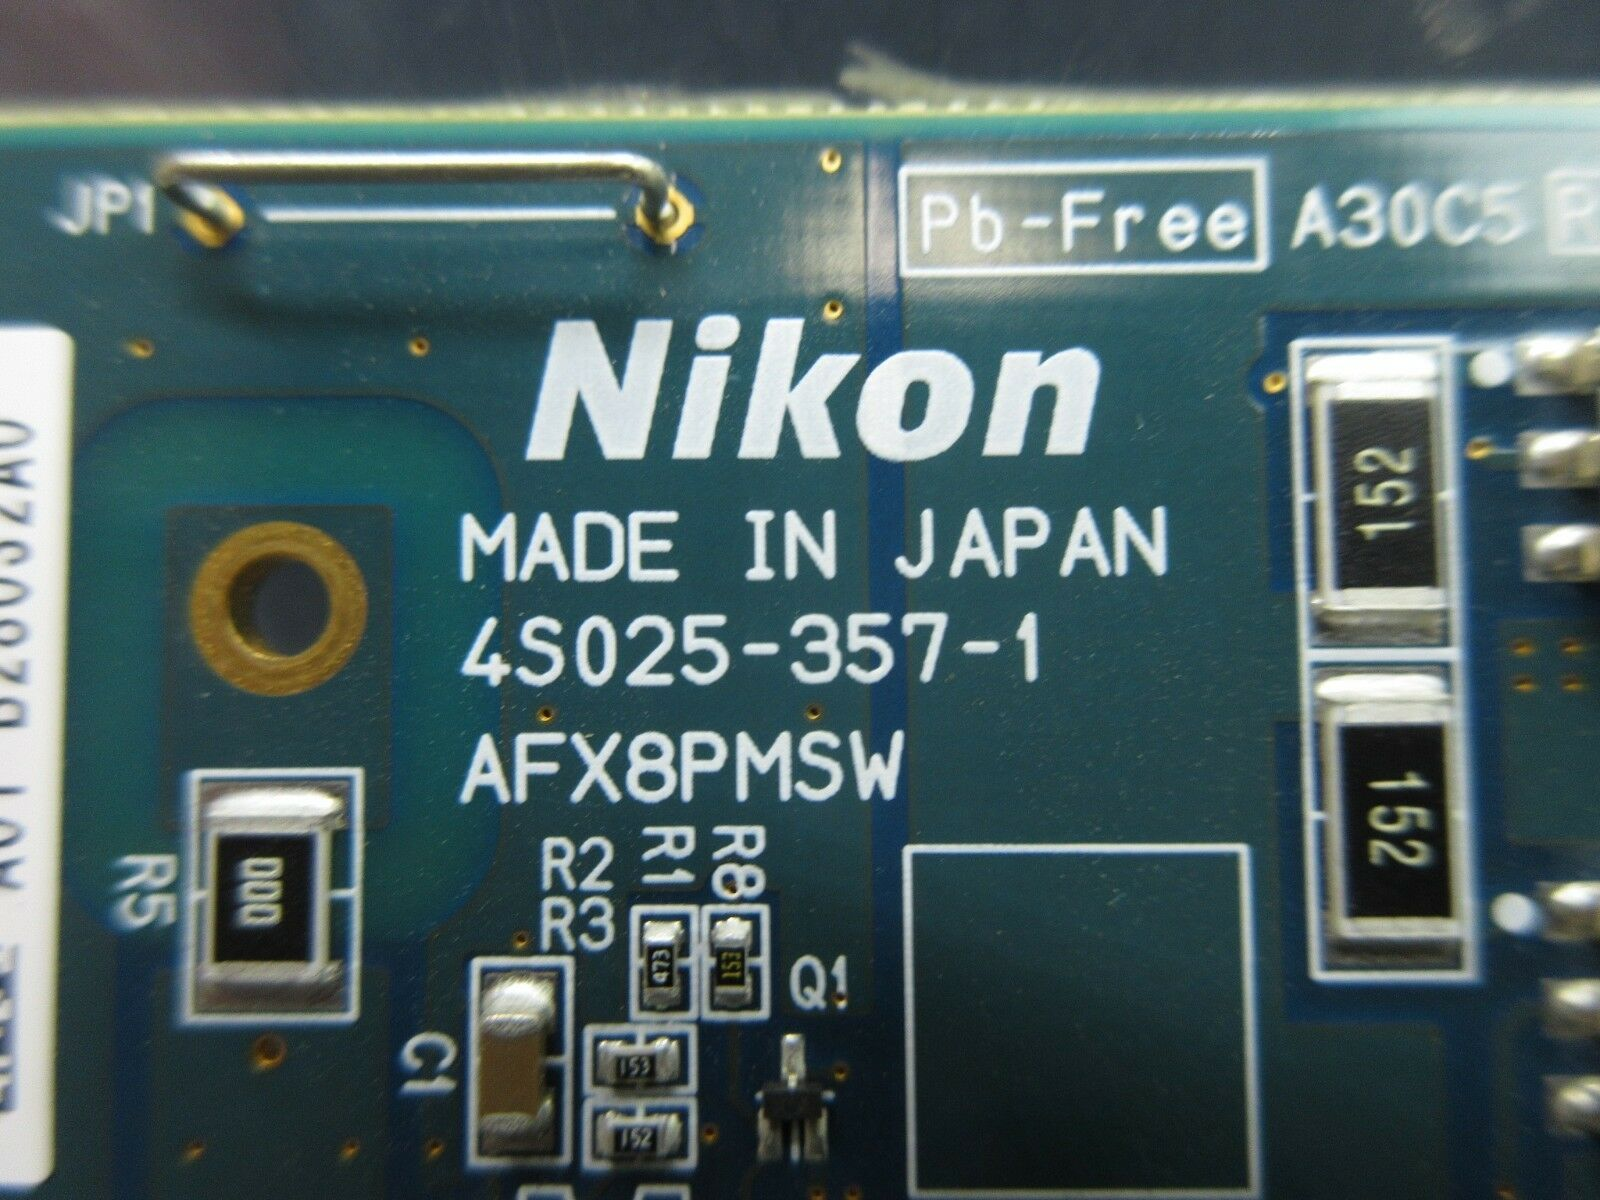 Nikon 4S025-357-1 Interface Board PCB NSR System Used Working